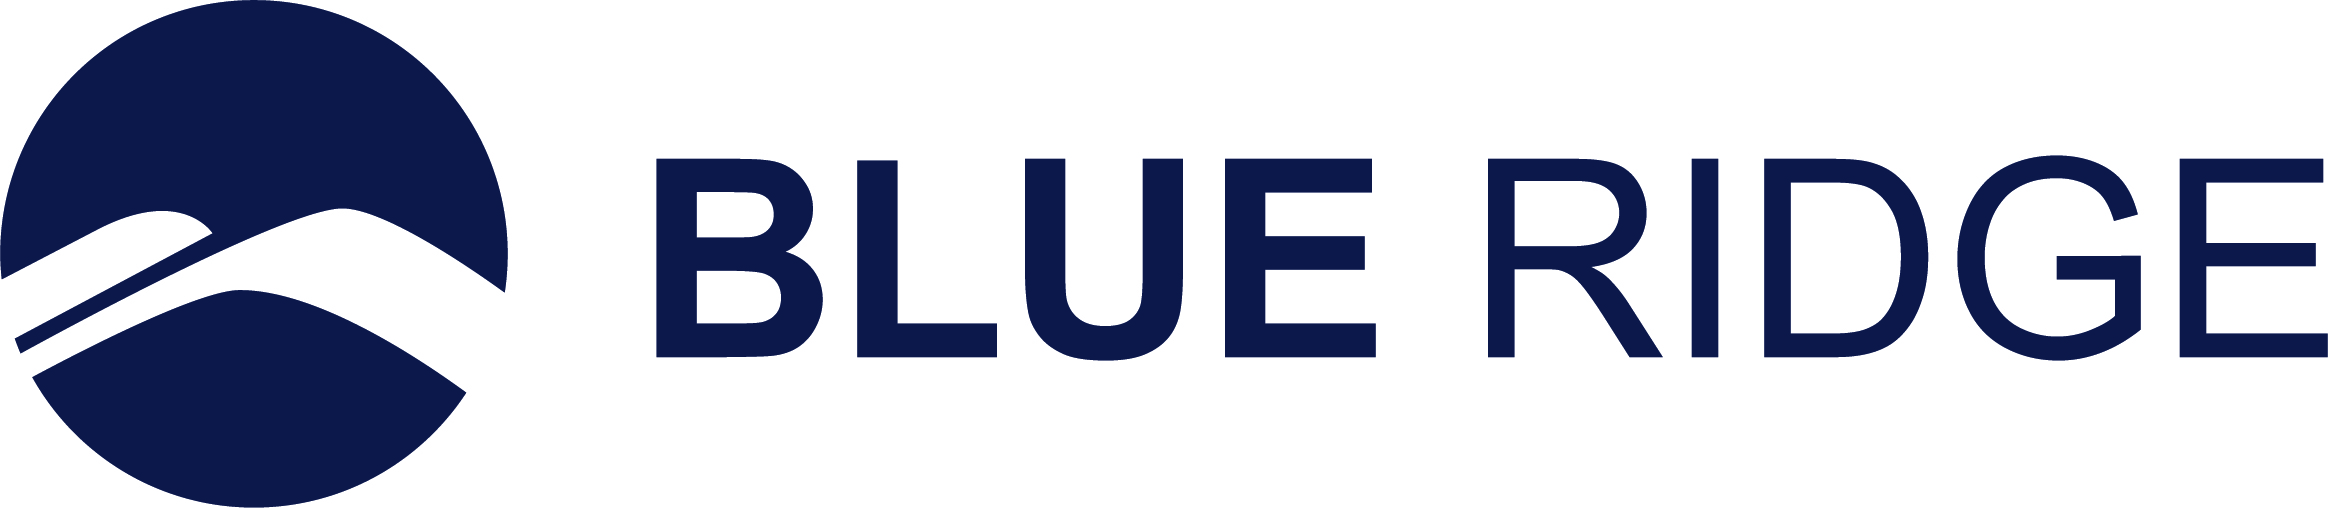 Mestergruppen AS Finds Go-Live Success with Blue Ridge Integrated Supply Chain Planning and Pricing Optimization Solution, Sees Rapid Productivity